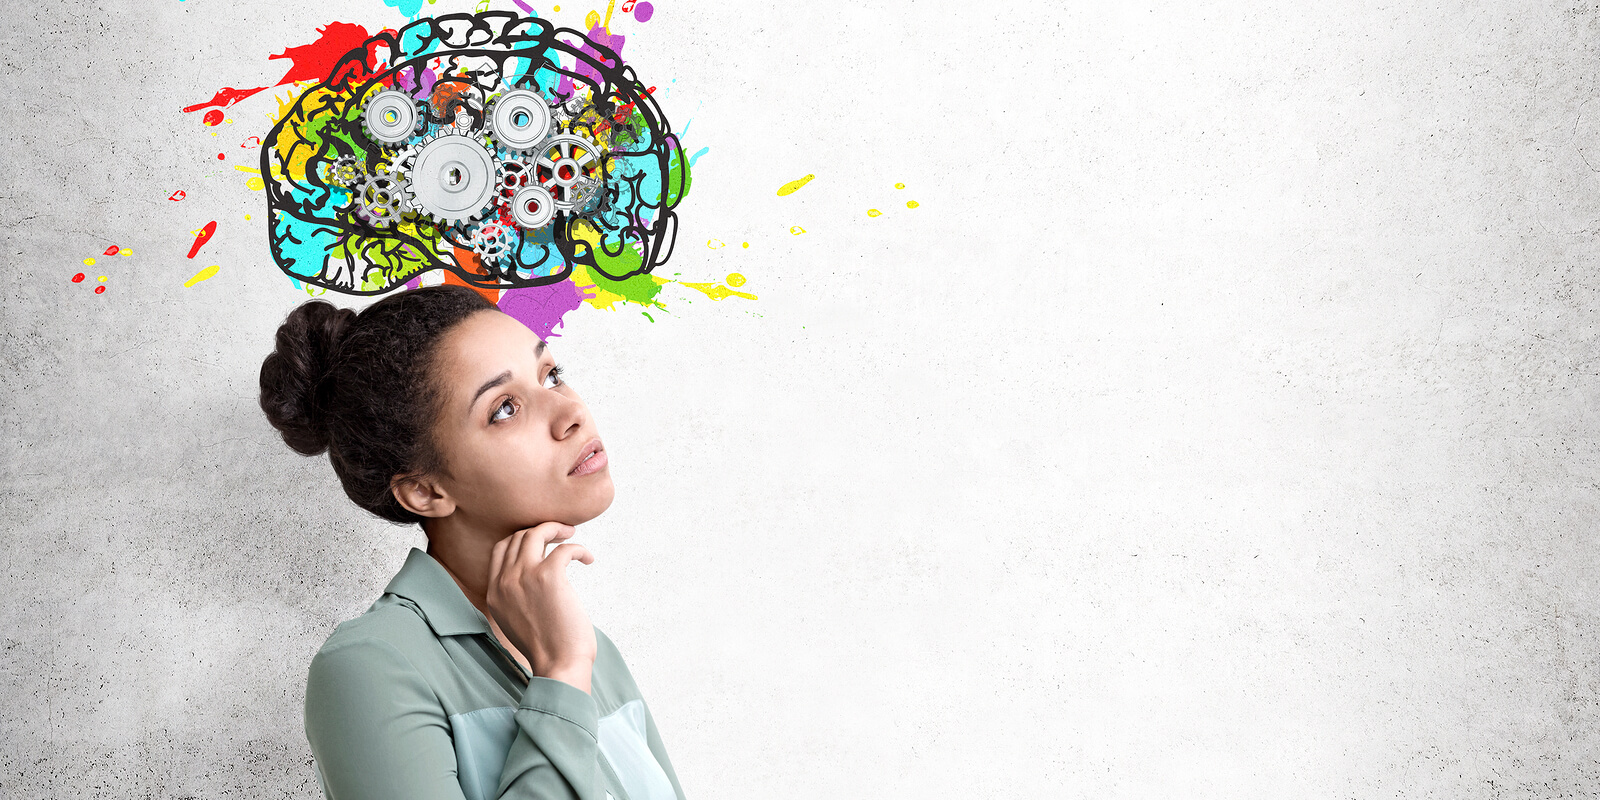 Emotional Intelligence Can Be Key to Workplace Success